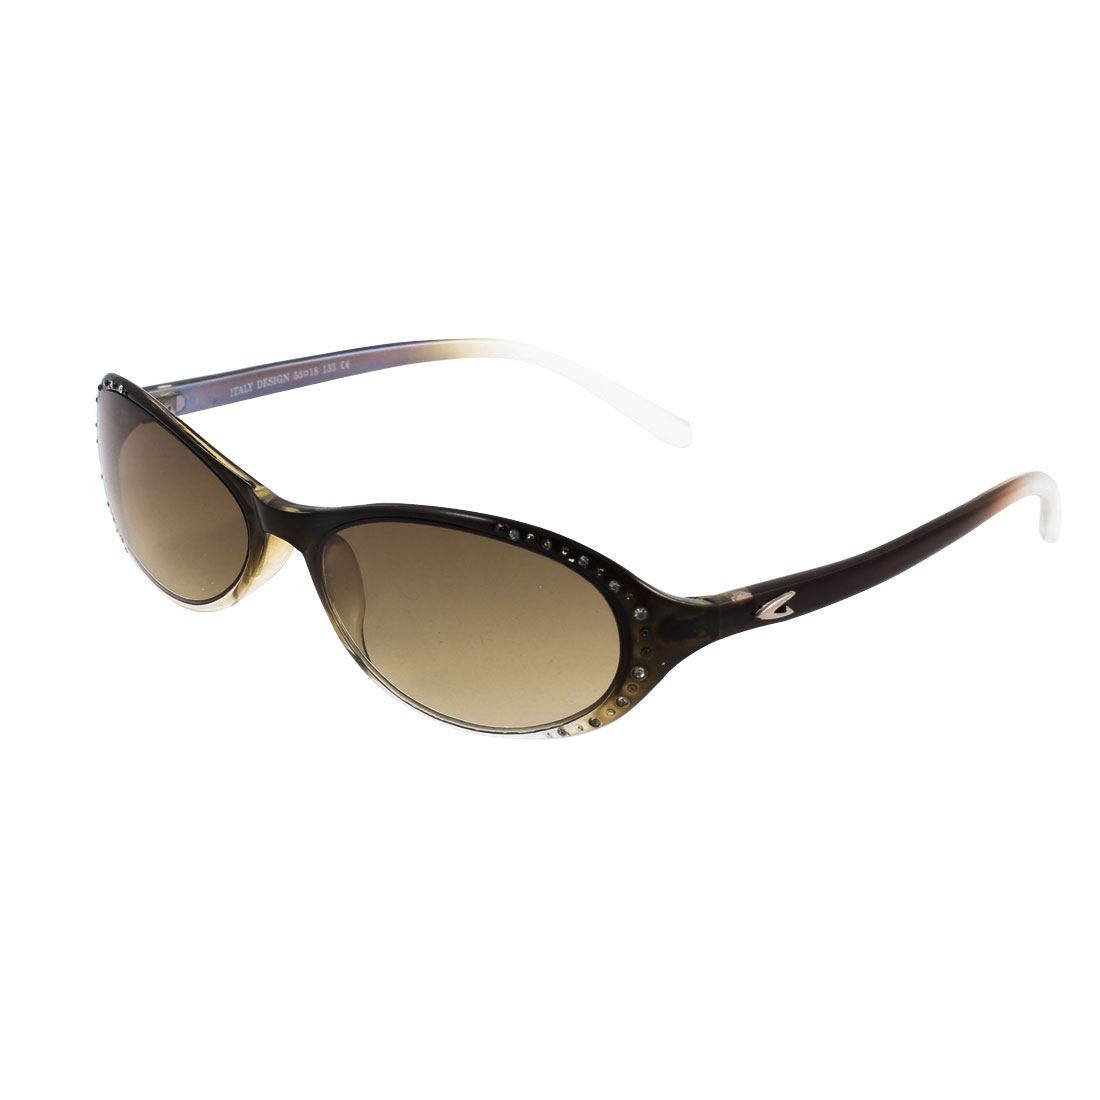 Women Full Frame Light Brown Colored Lens Single Bridge Plastic Sunglasses